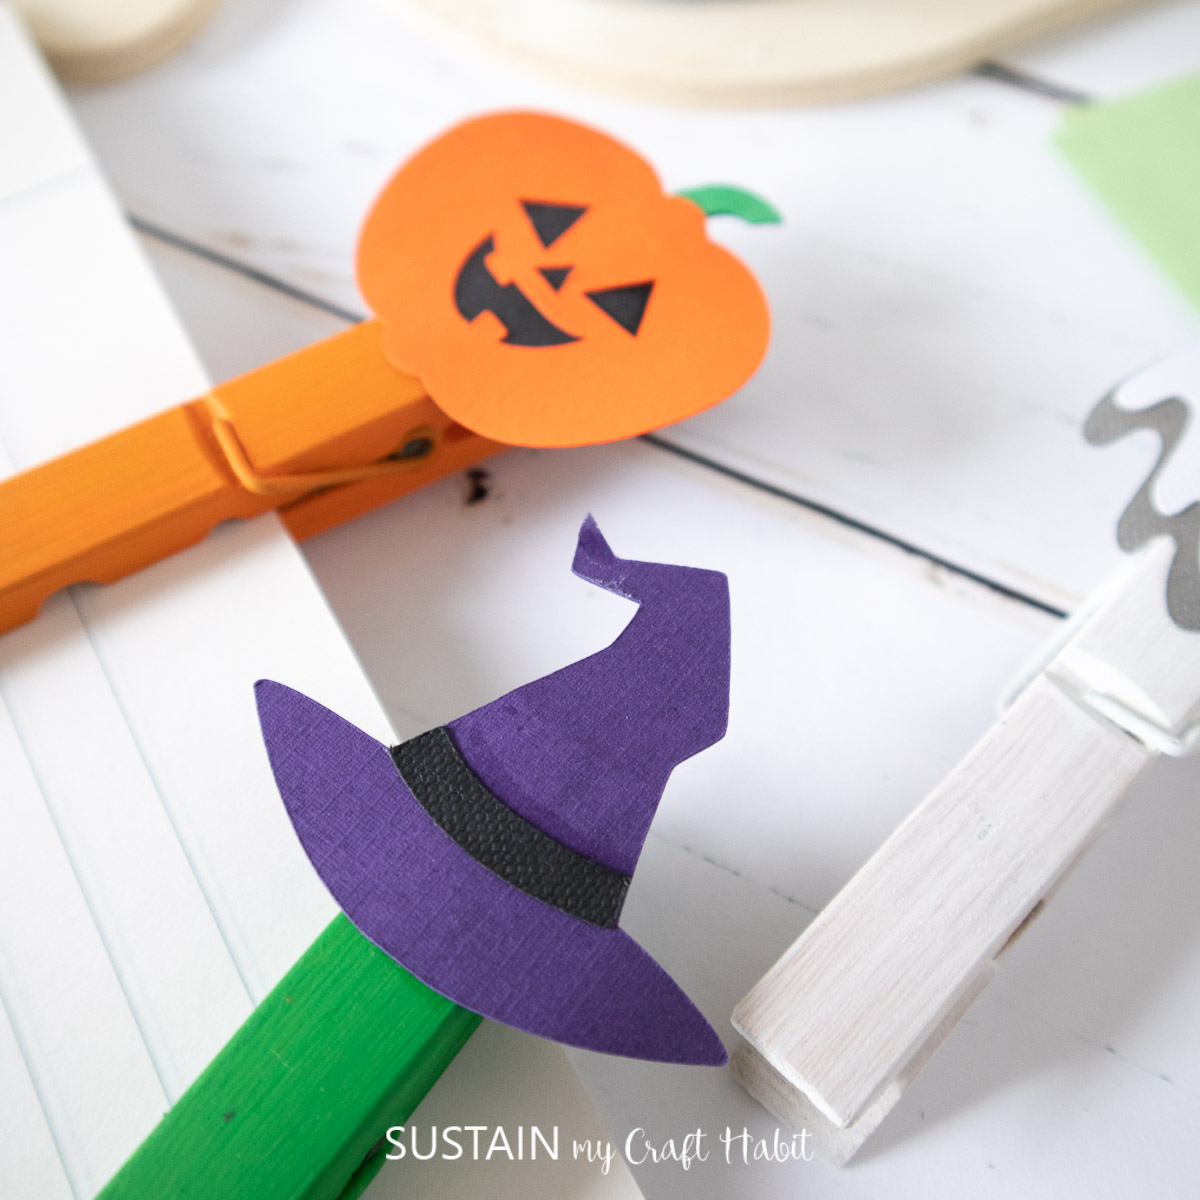 Completed pumpkin and witch's hat clothespin crafts being used to hold papers together.